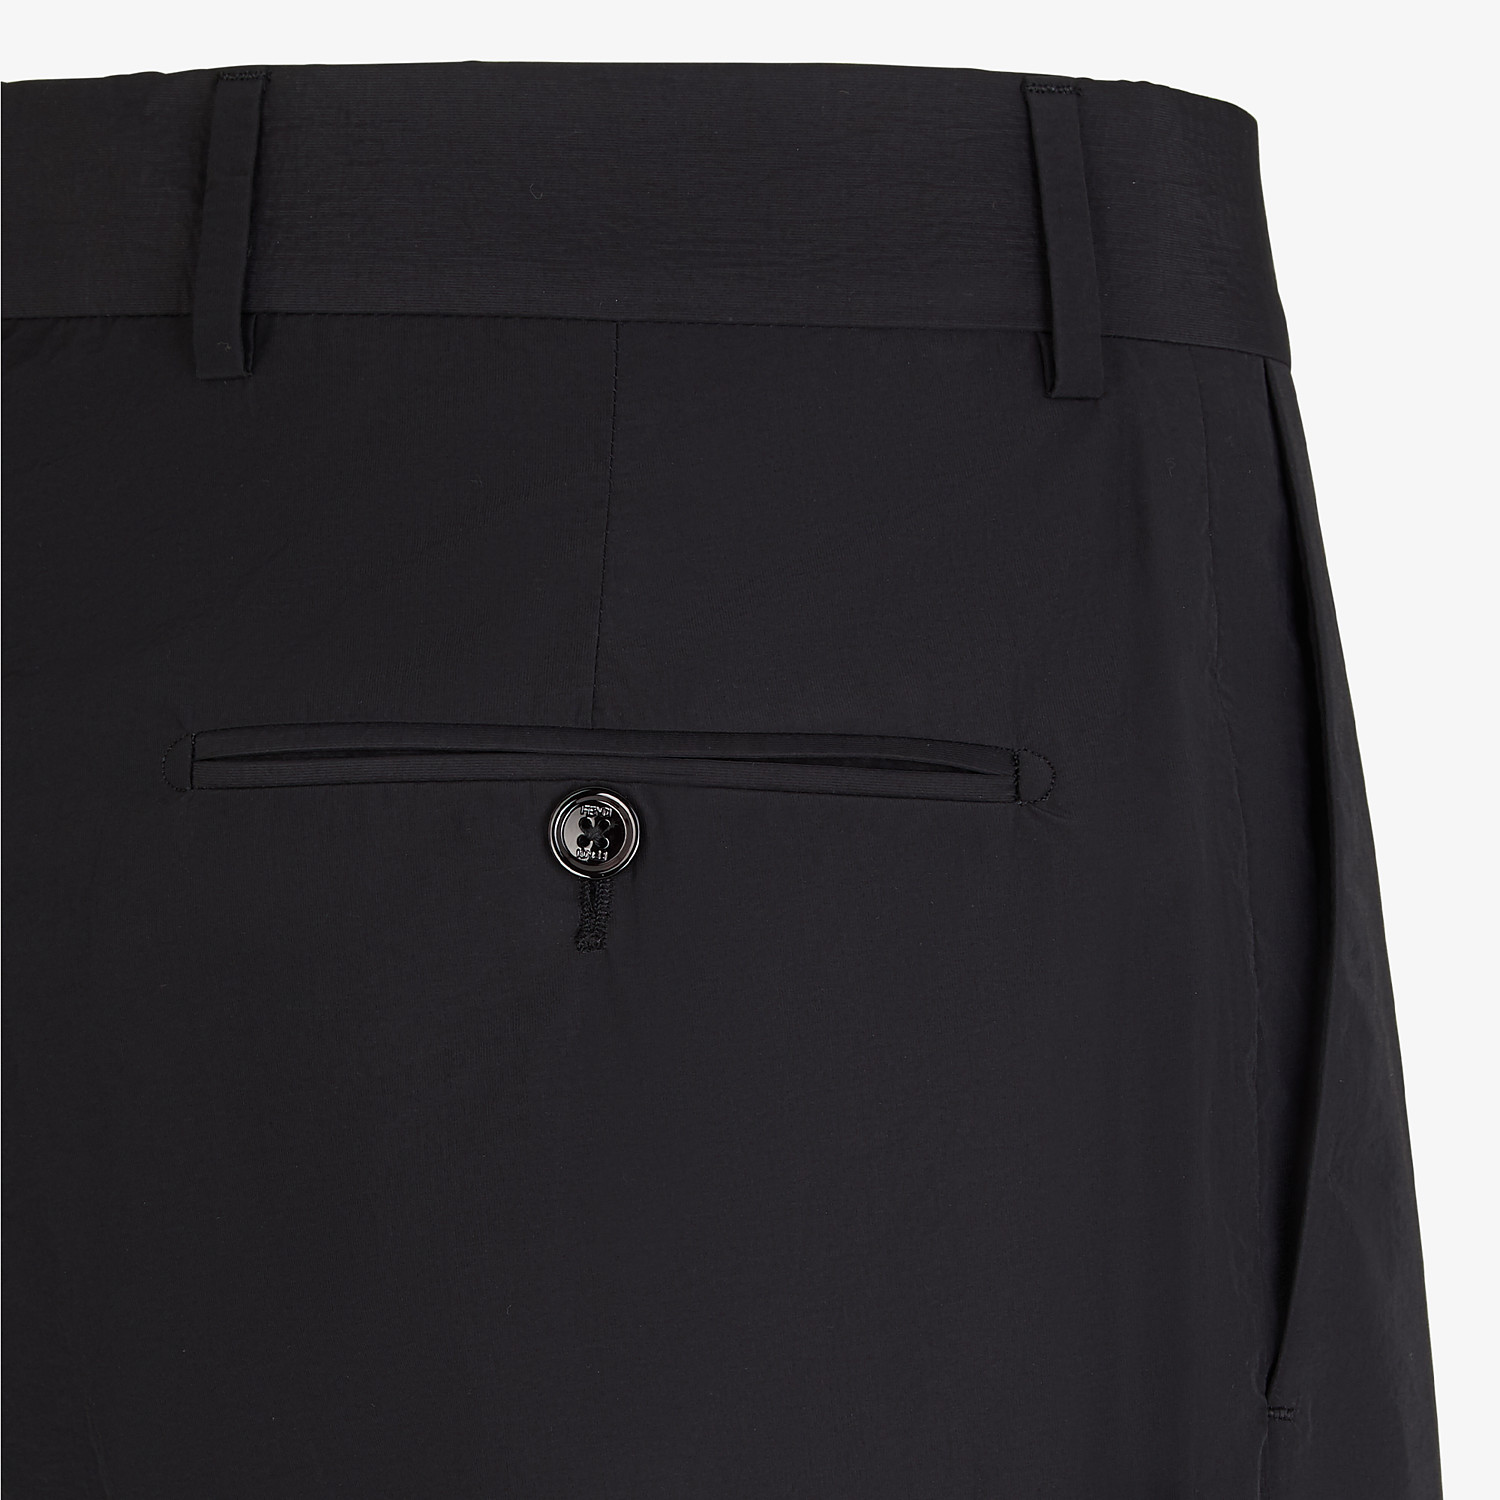 FENDI BERMUDAS - Black nylon and cotton trousers - view 3 detail